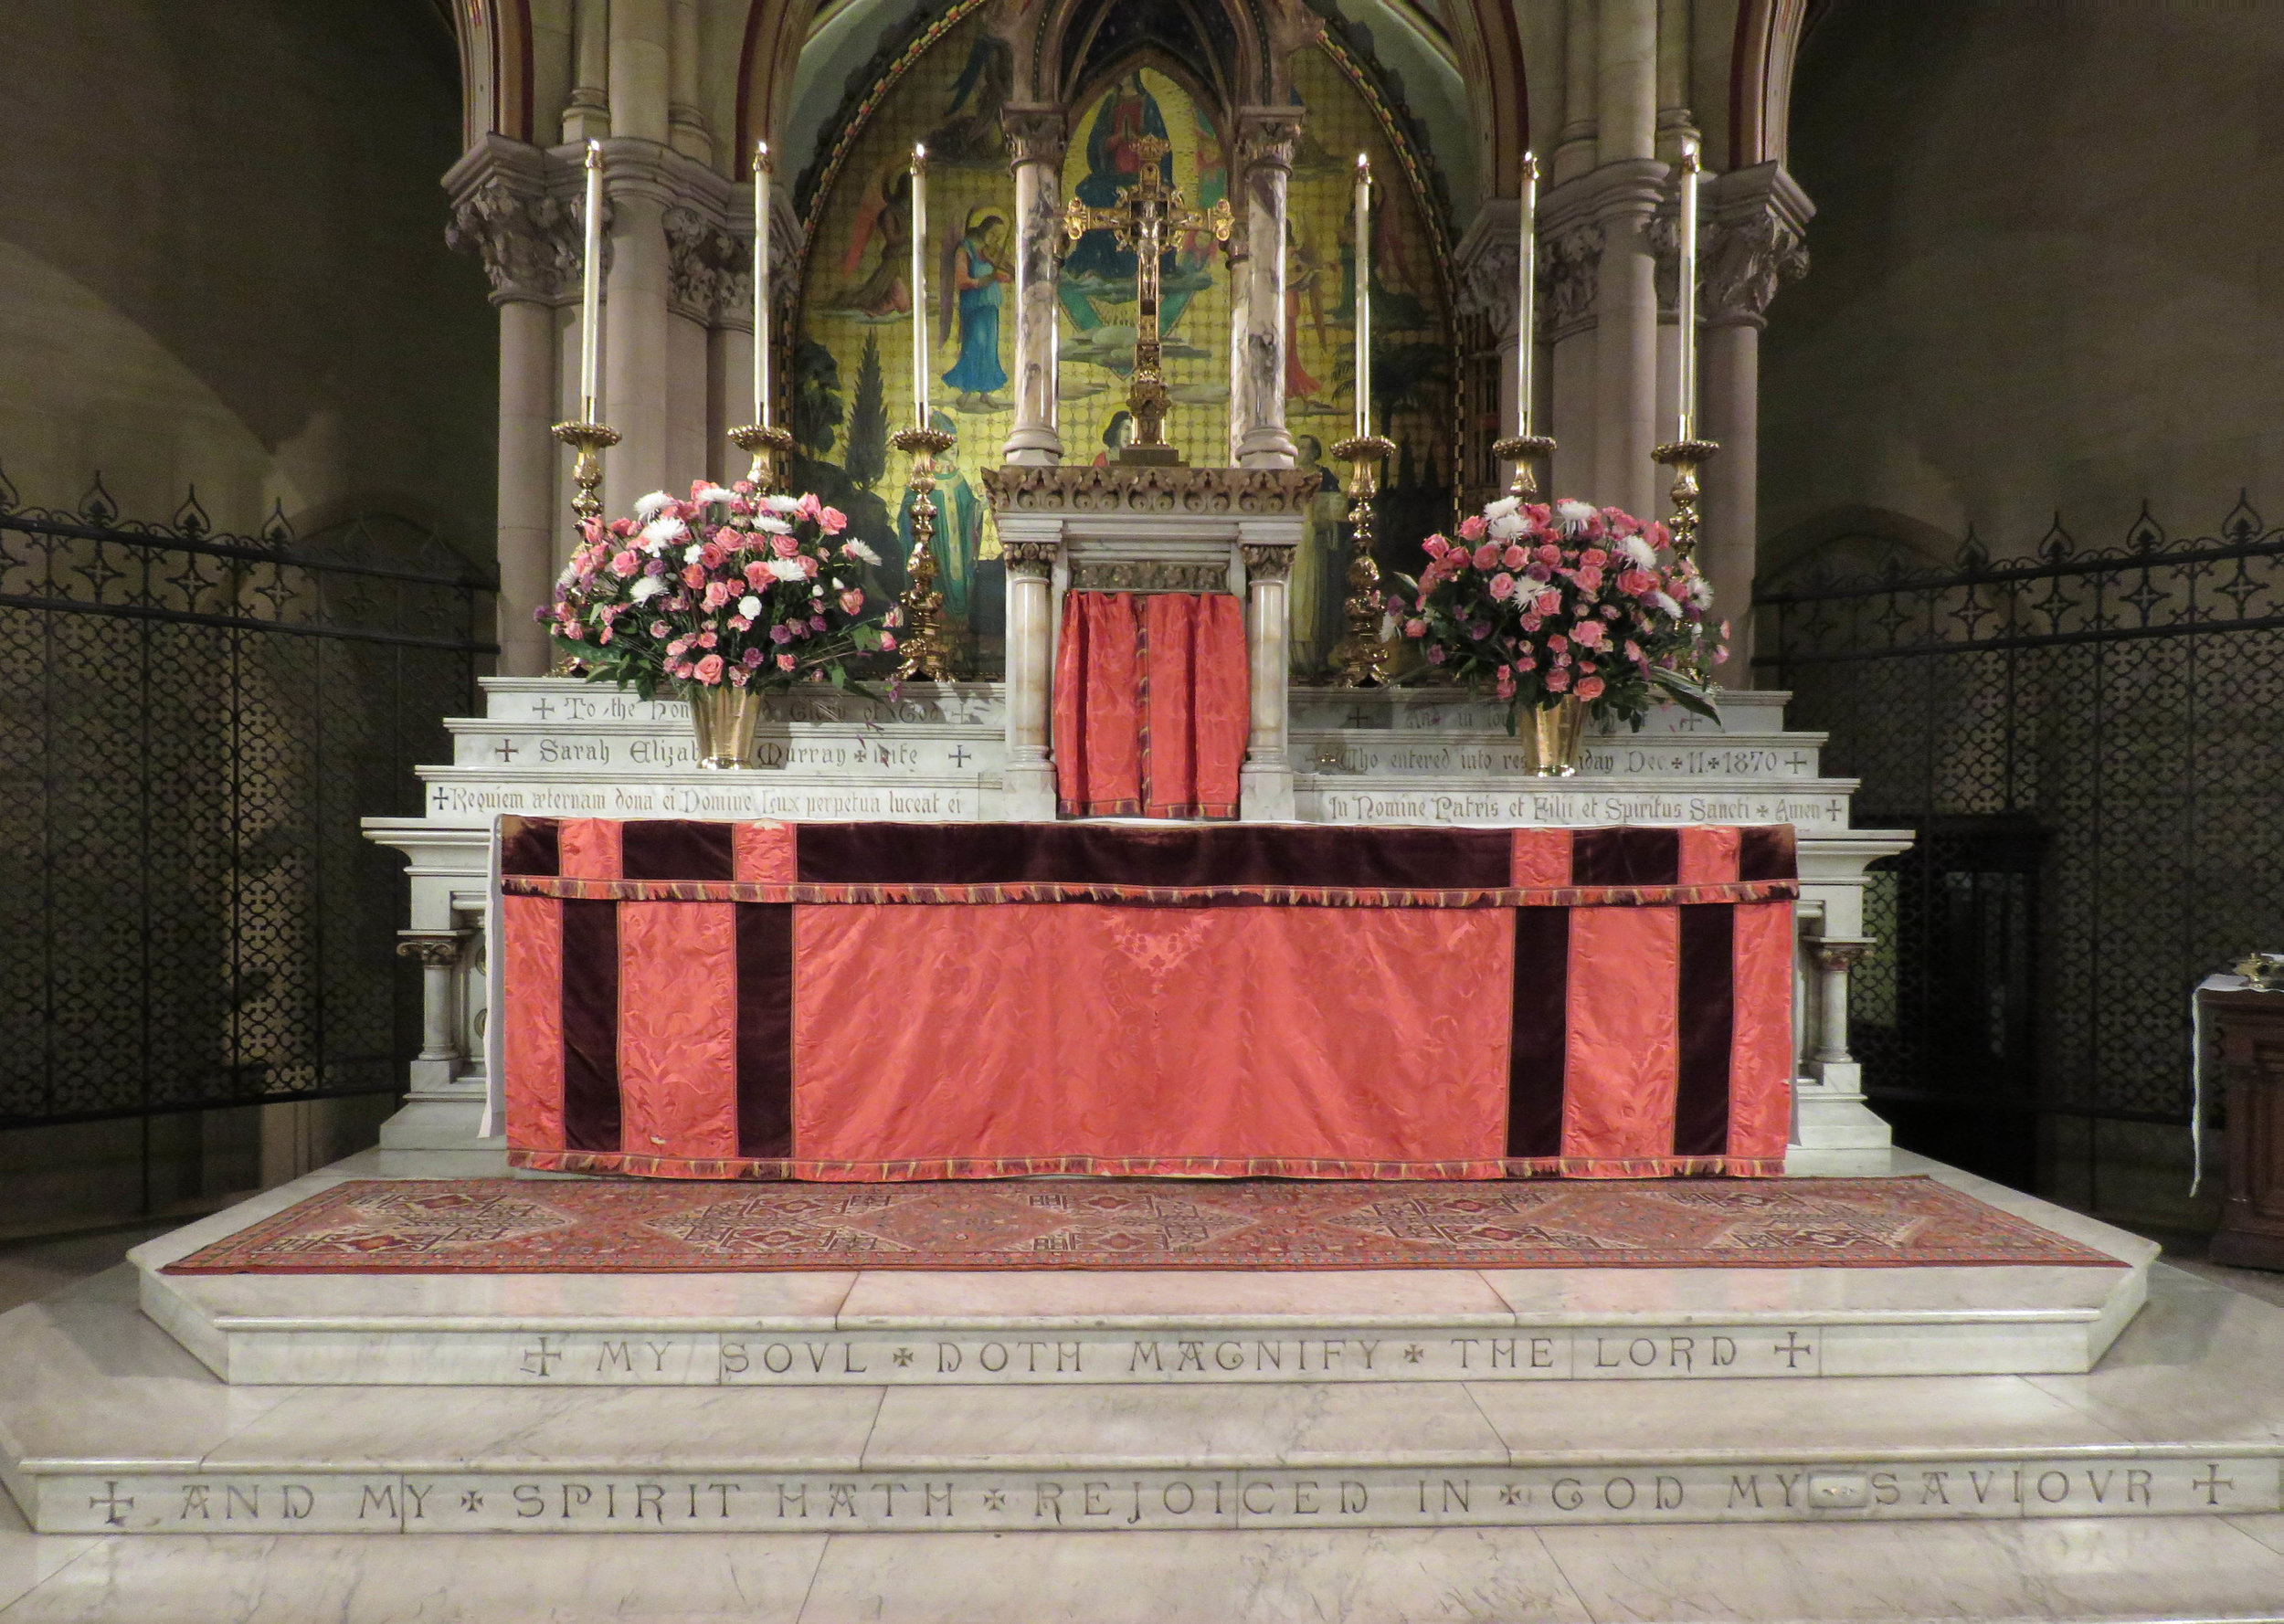 The High Altar, The Fourth Sunday in Lent, March 31, 2019   Photo by Damien Joseph SSF